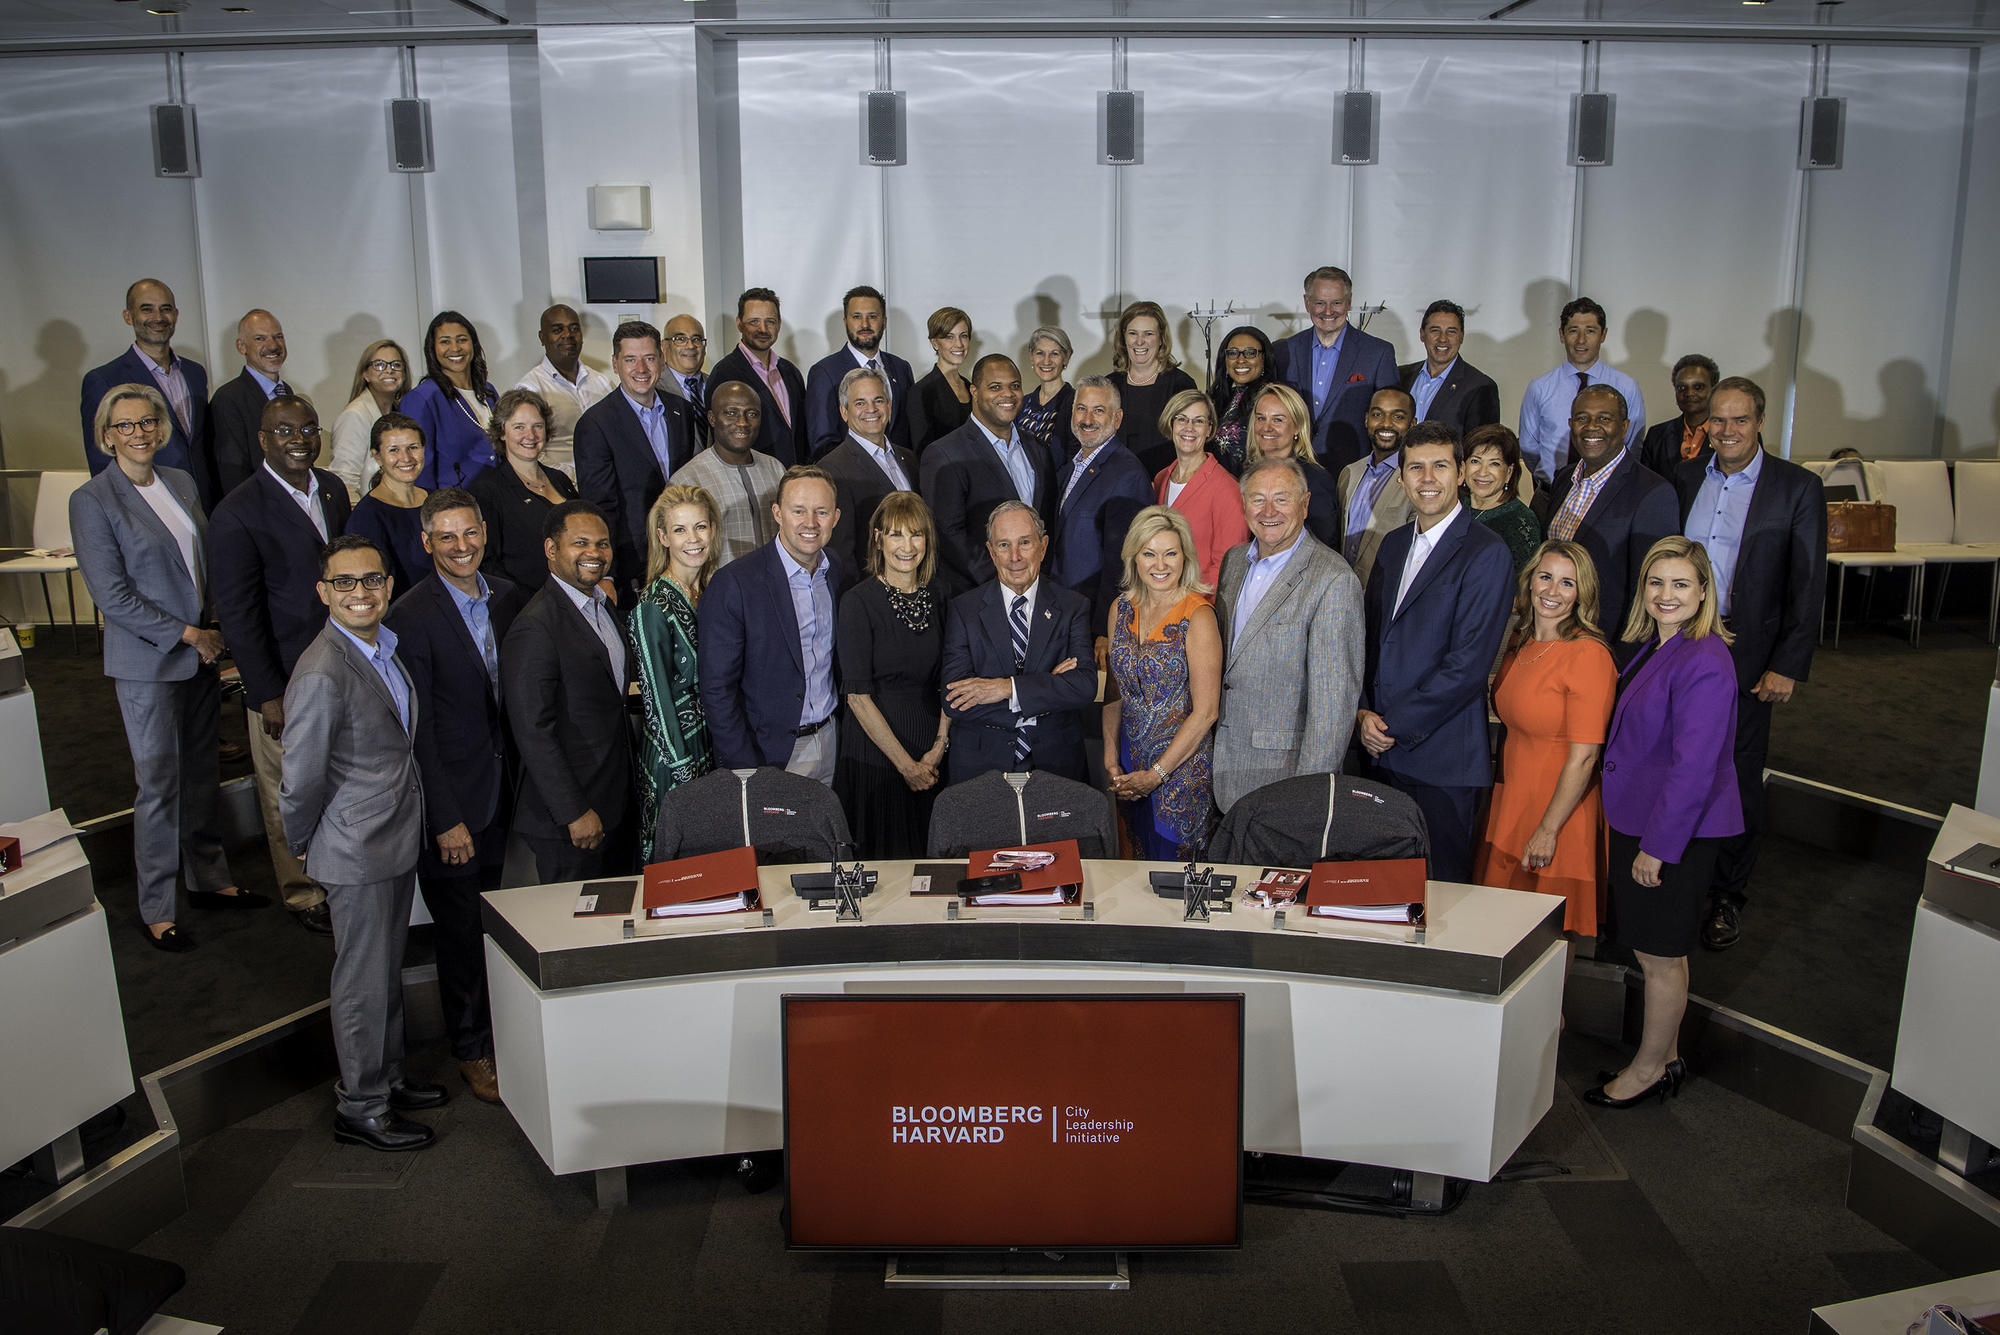 Bloomberg Harvard City Leadership Initiative Year Three Group Photo